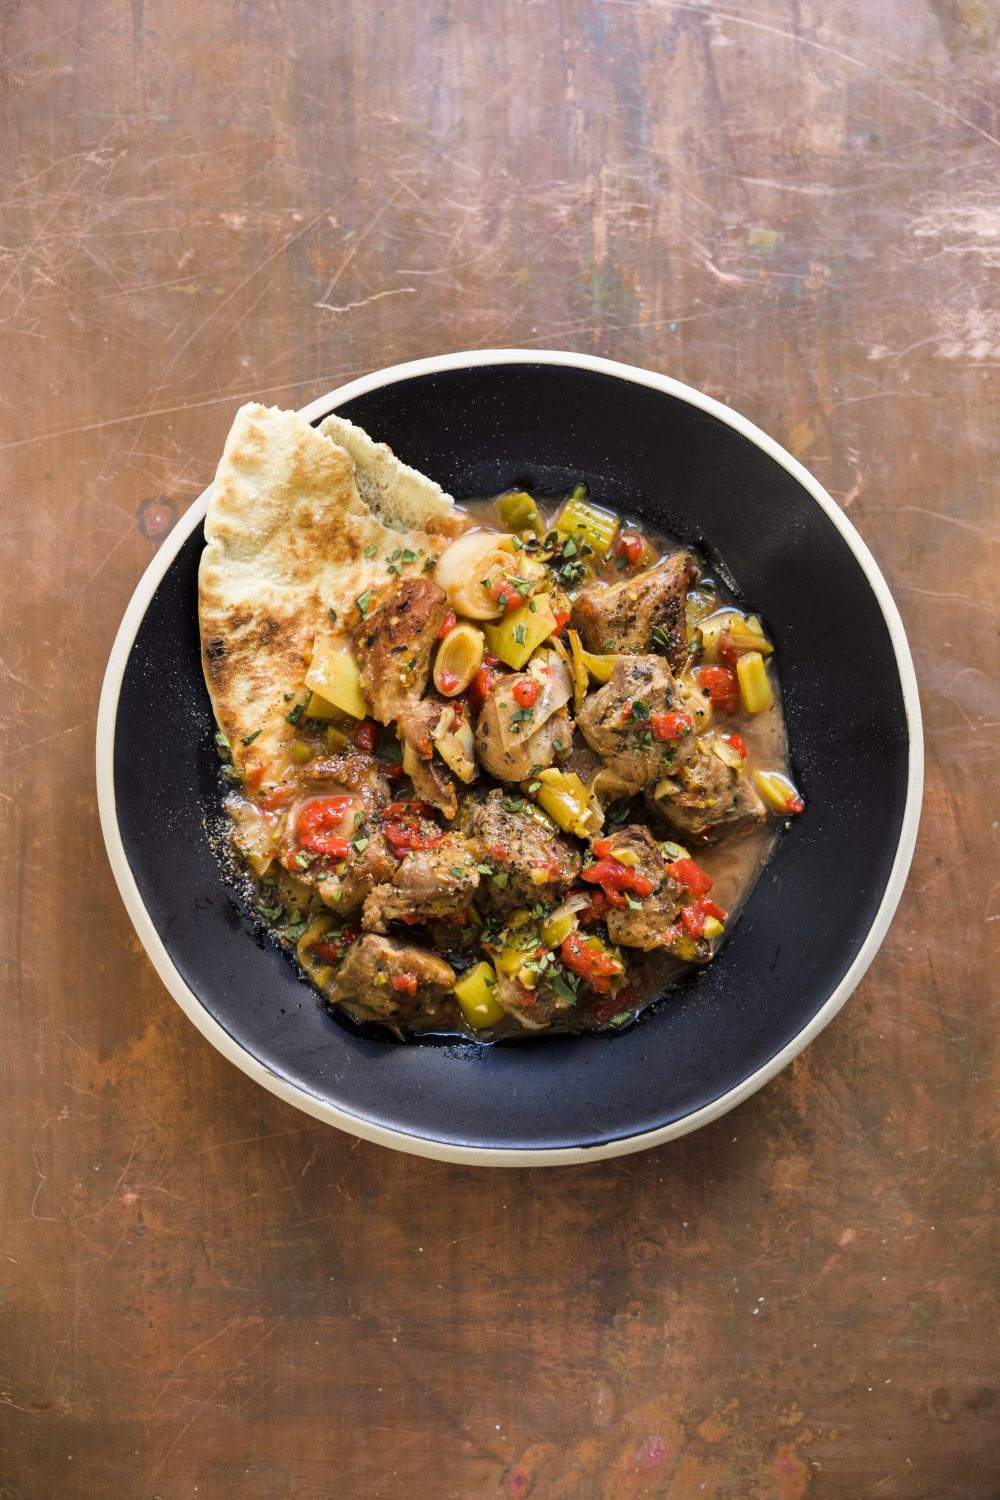 Spicy Pork with Leeks and Roasted Red Peppers (Tigania)